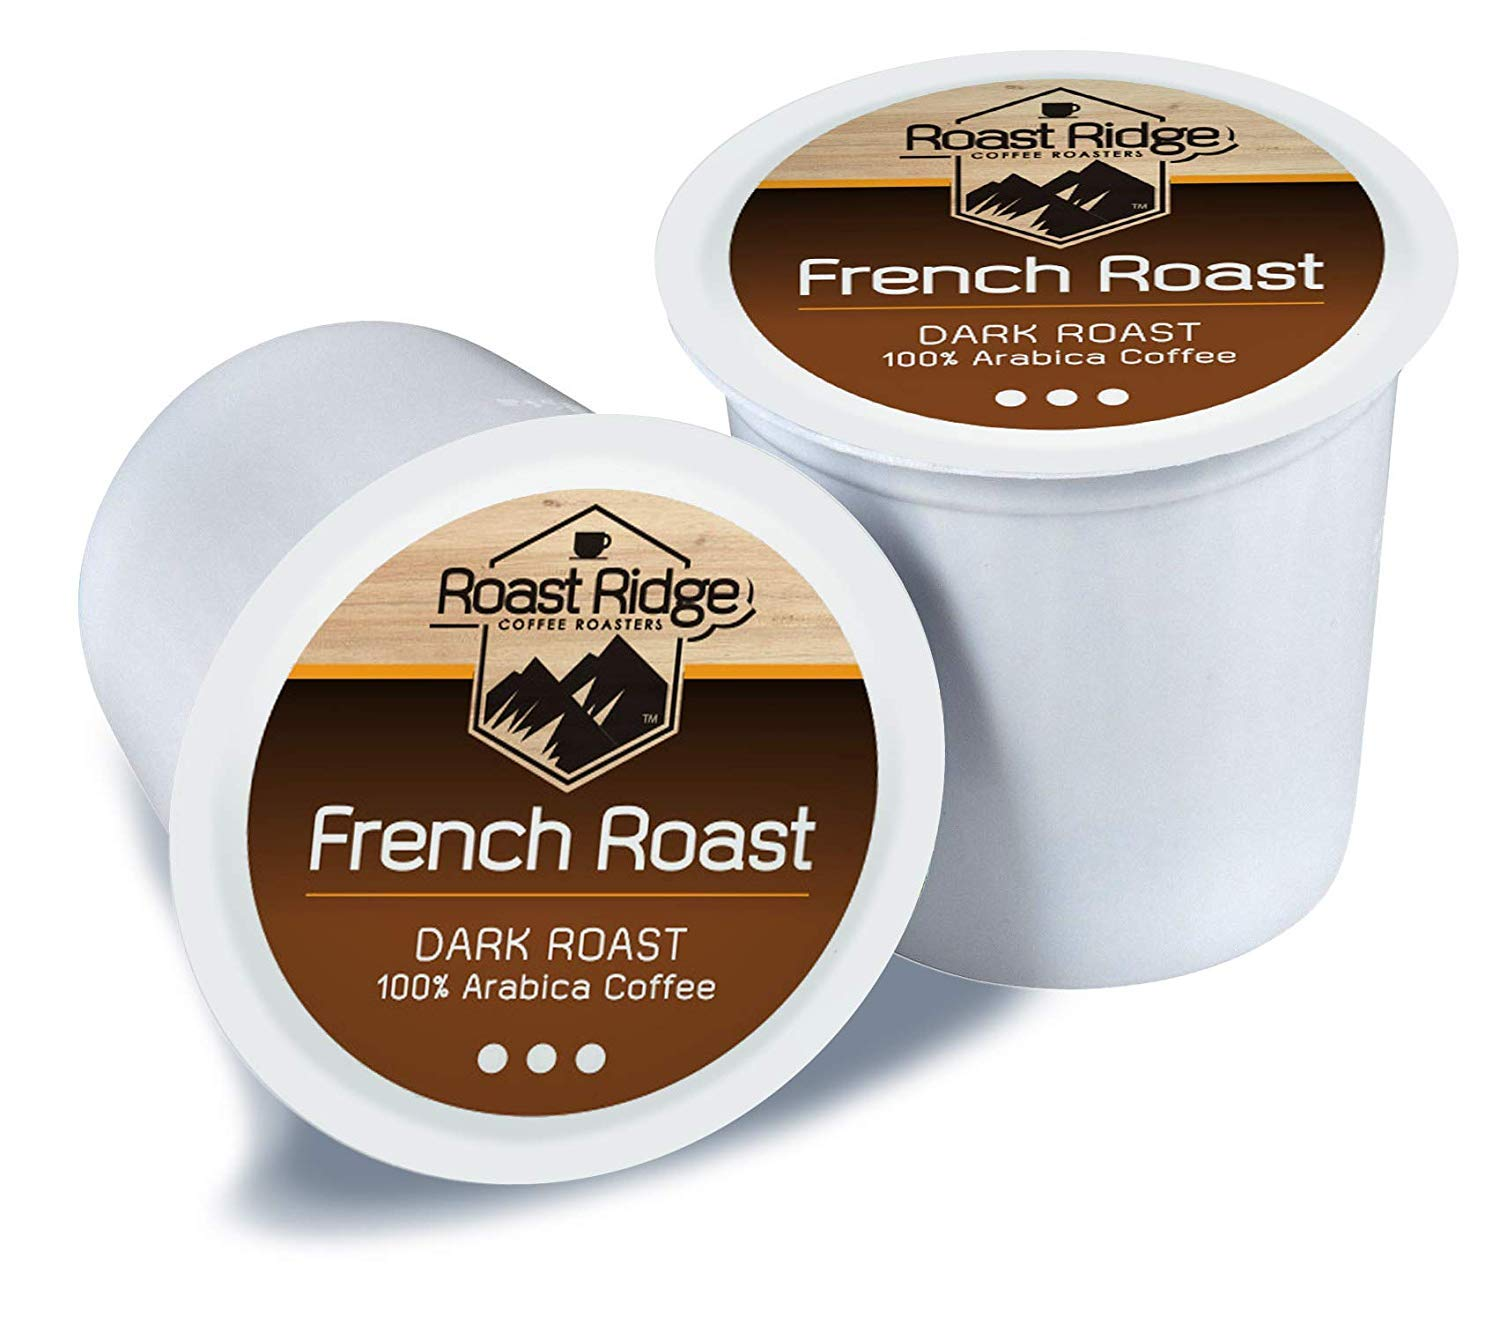 再再販! Roast Ridge Compatible Coffee Roasters Including French Roast French Single Cup Coffee 100 Count Hot Beverage Cups, Compatible with Most Single-Serve Brewing Systems that Accept K-Cups, Including Keurig 2.4 B07H2LKZ87, 松末フラワーガーデン:b5b699bb --- svecha37.ru